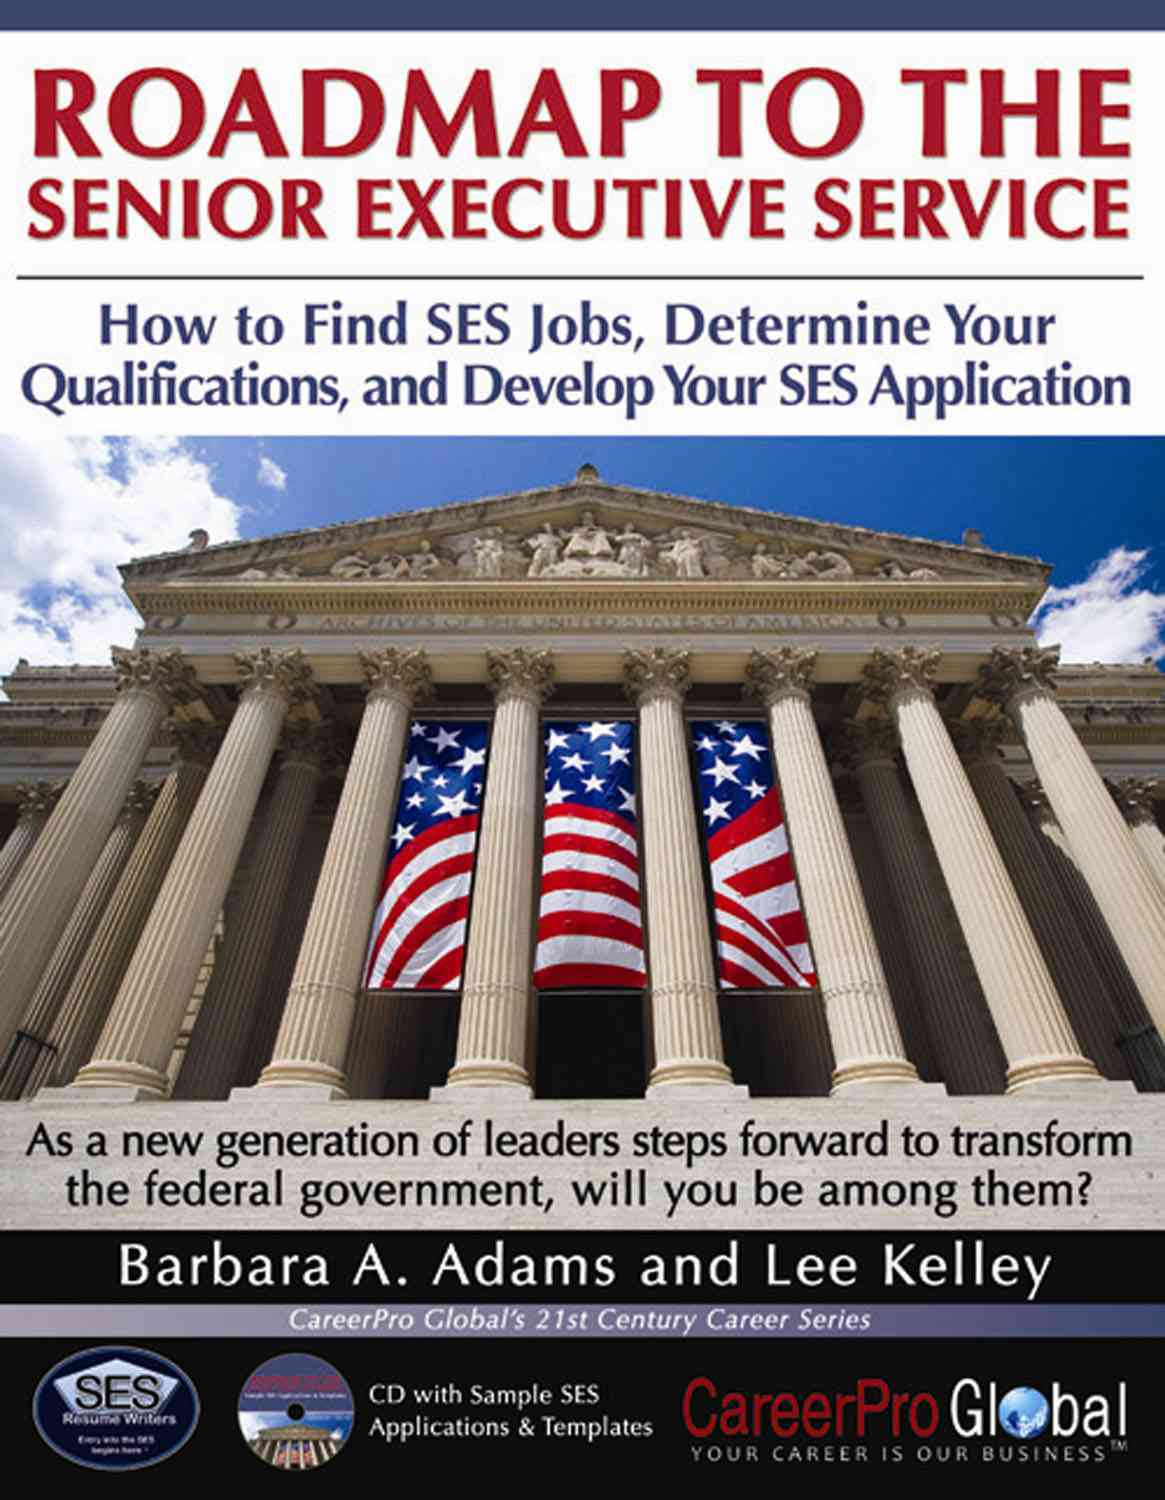 Career Pro Global Inc Roadmap to the Senior Executive Service: How to Find SES Jobs, Determine Your Qualifications, and Develop Your SES Application [ at Sears.com